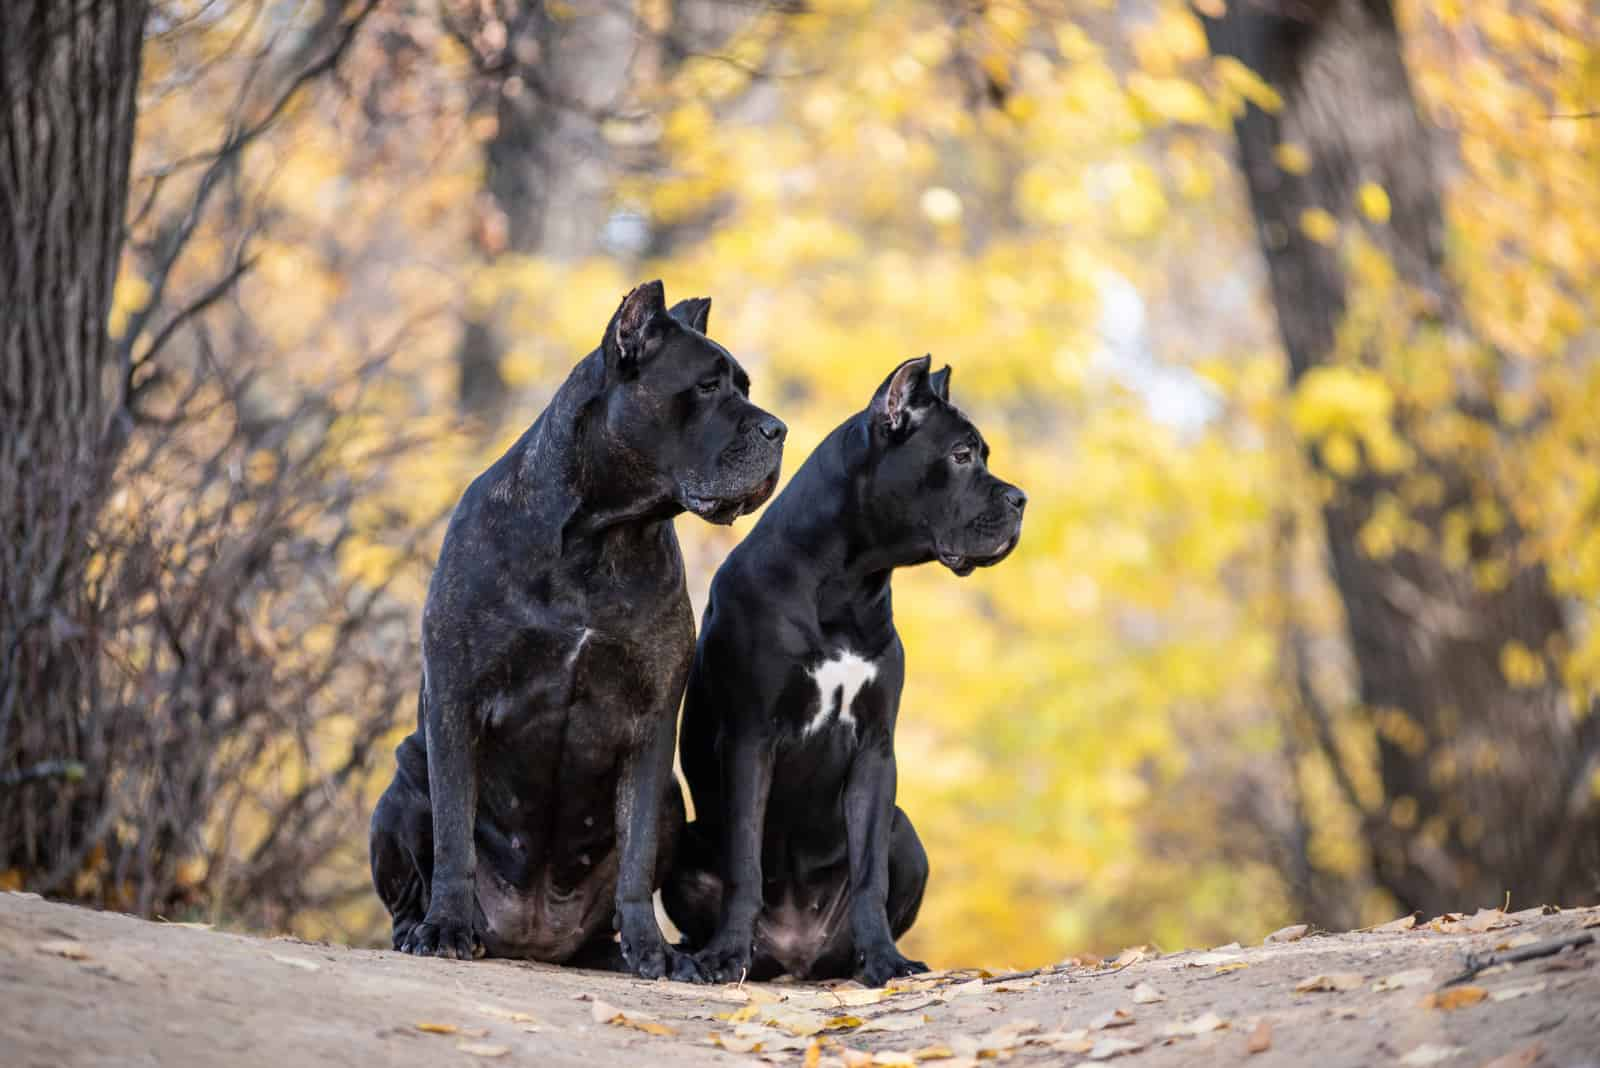 Two Cane Corso dogs are sitting in the autumn park